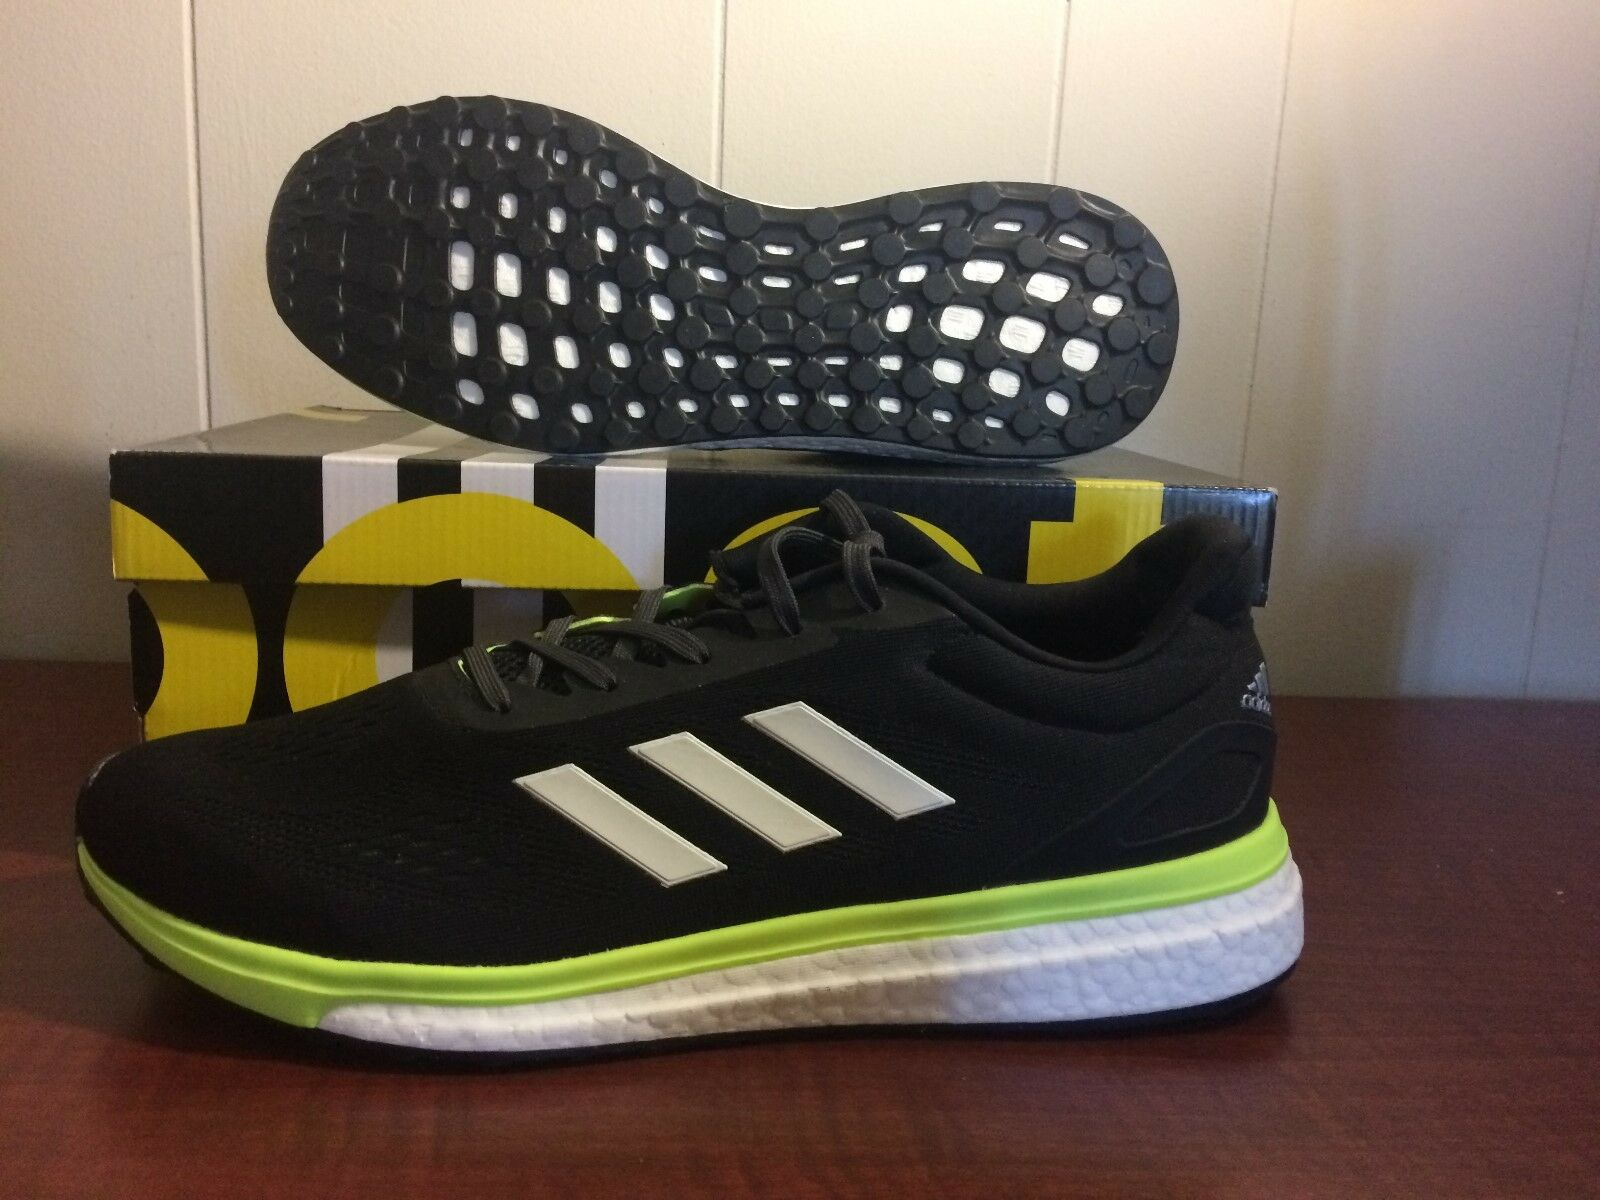 ADIDAS RESPONSE IT homme chaussures noir